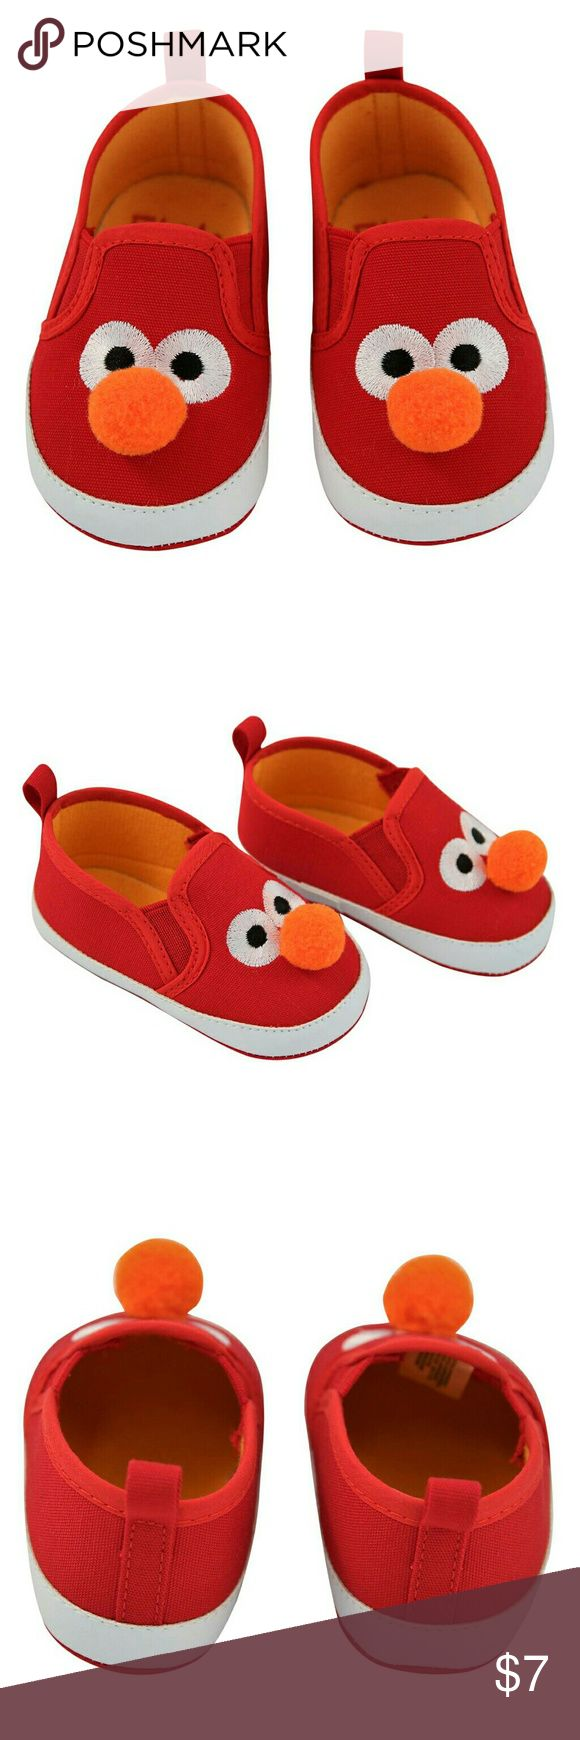 Baby Sesame Street Elmo Crib Shoes Bright red crib shoes feature the face of Elmo! Complete with an orange pom-pom for the nose. 100% cotton upper and sole help feet to breathe. Recommended for ages 6-9 months. Sesame Street Shoes Baby & Walker